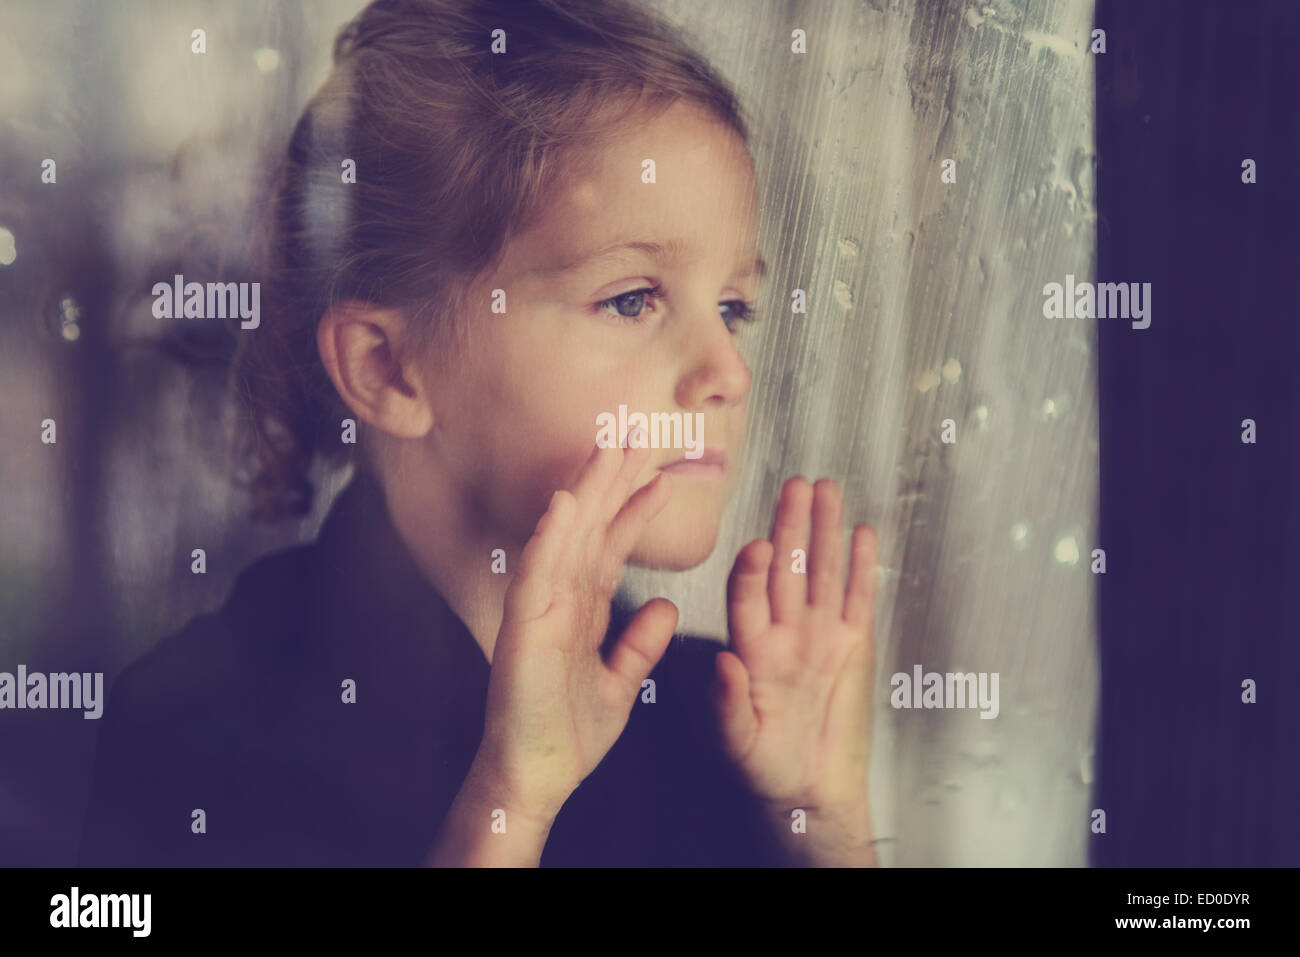 Girl (4-5) looking through wet window - Stock Image